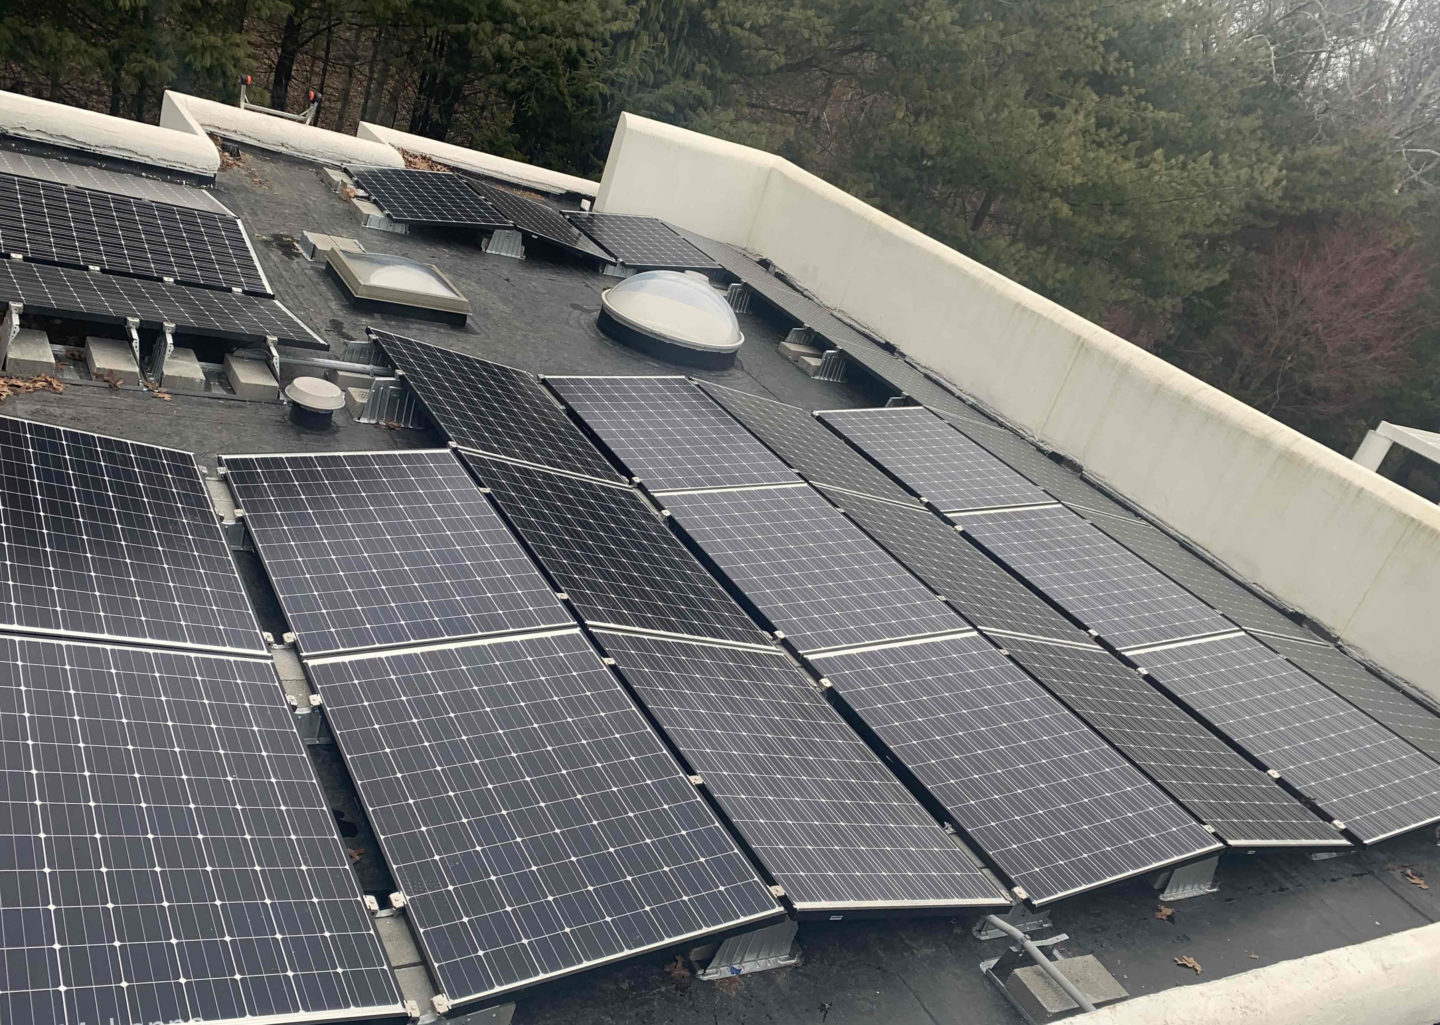 large solar array on flat roof